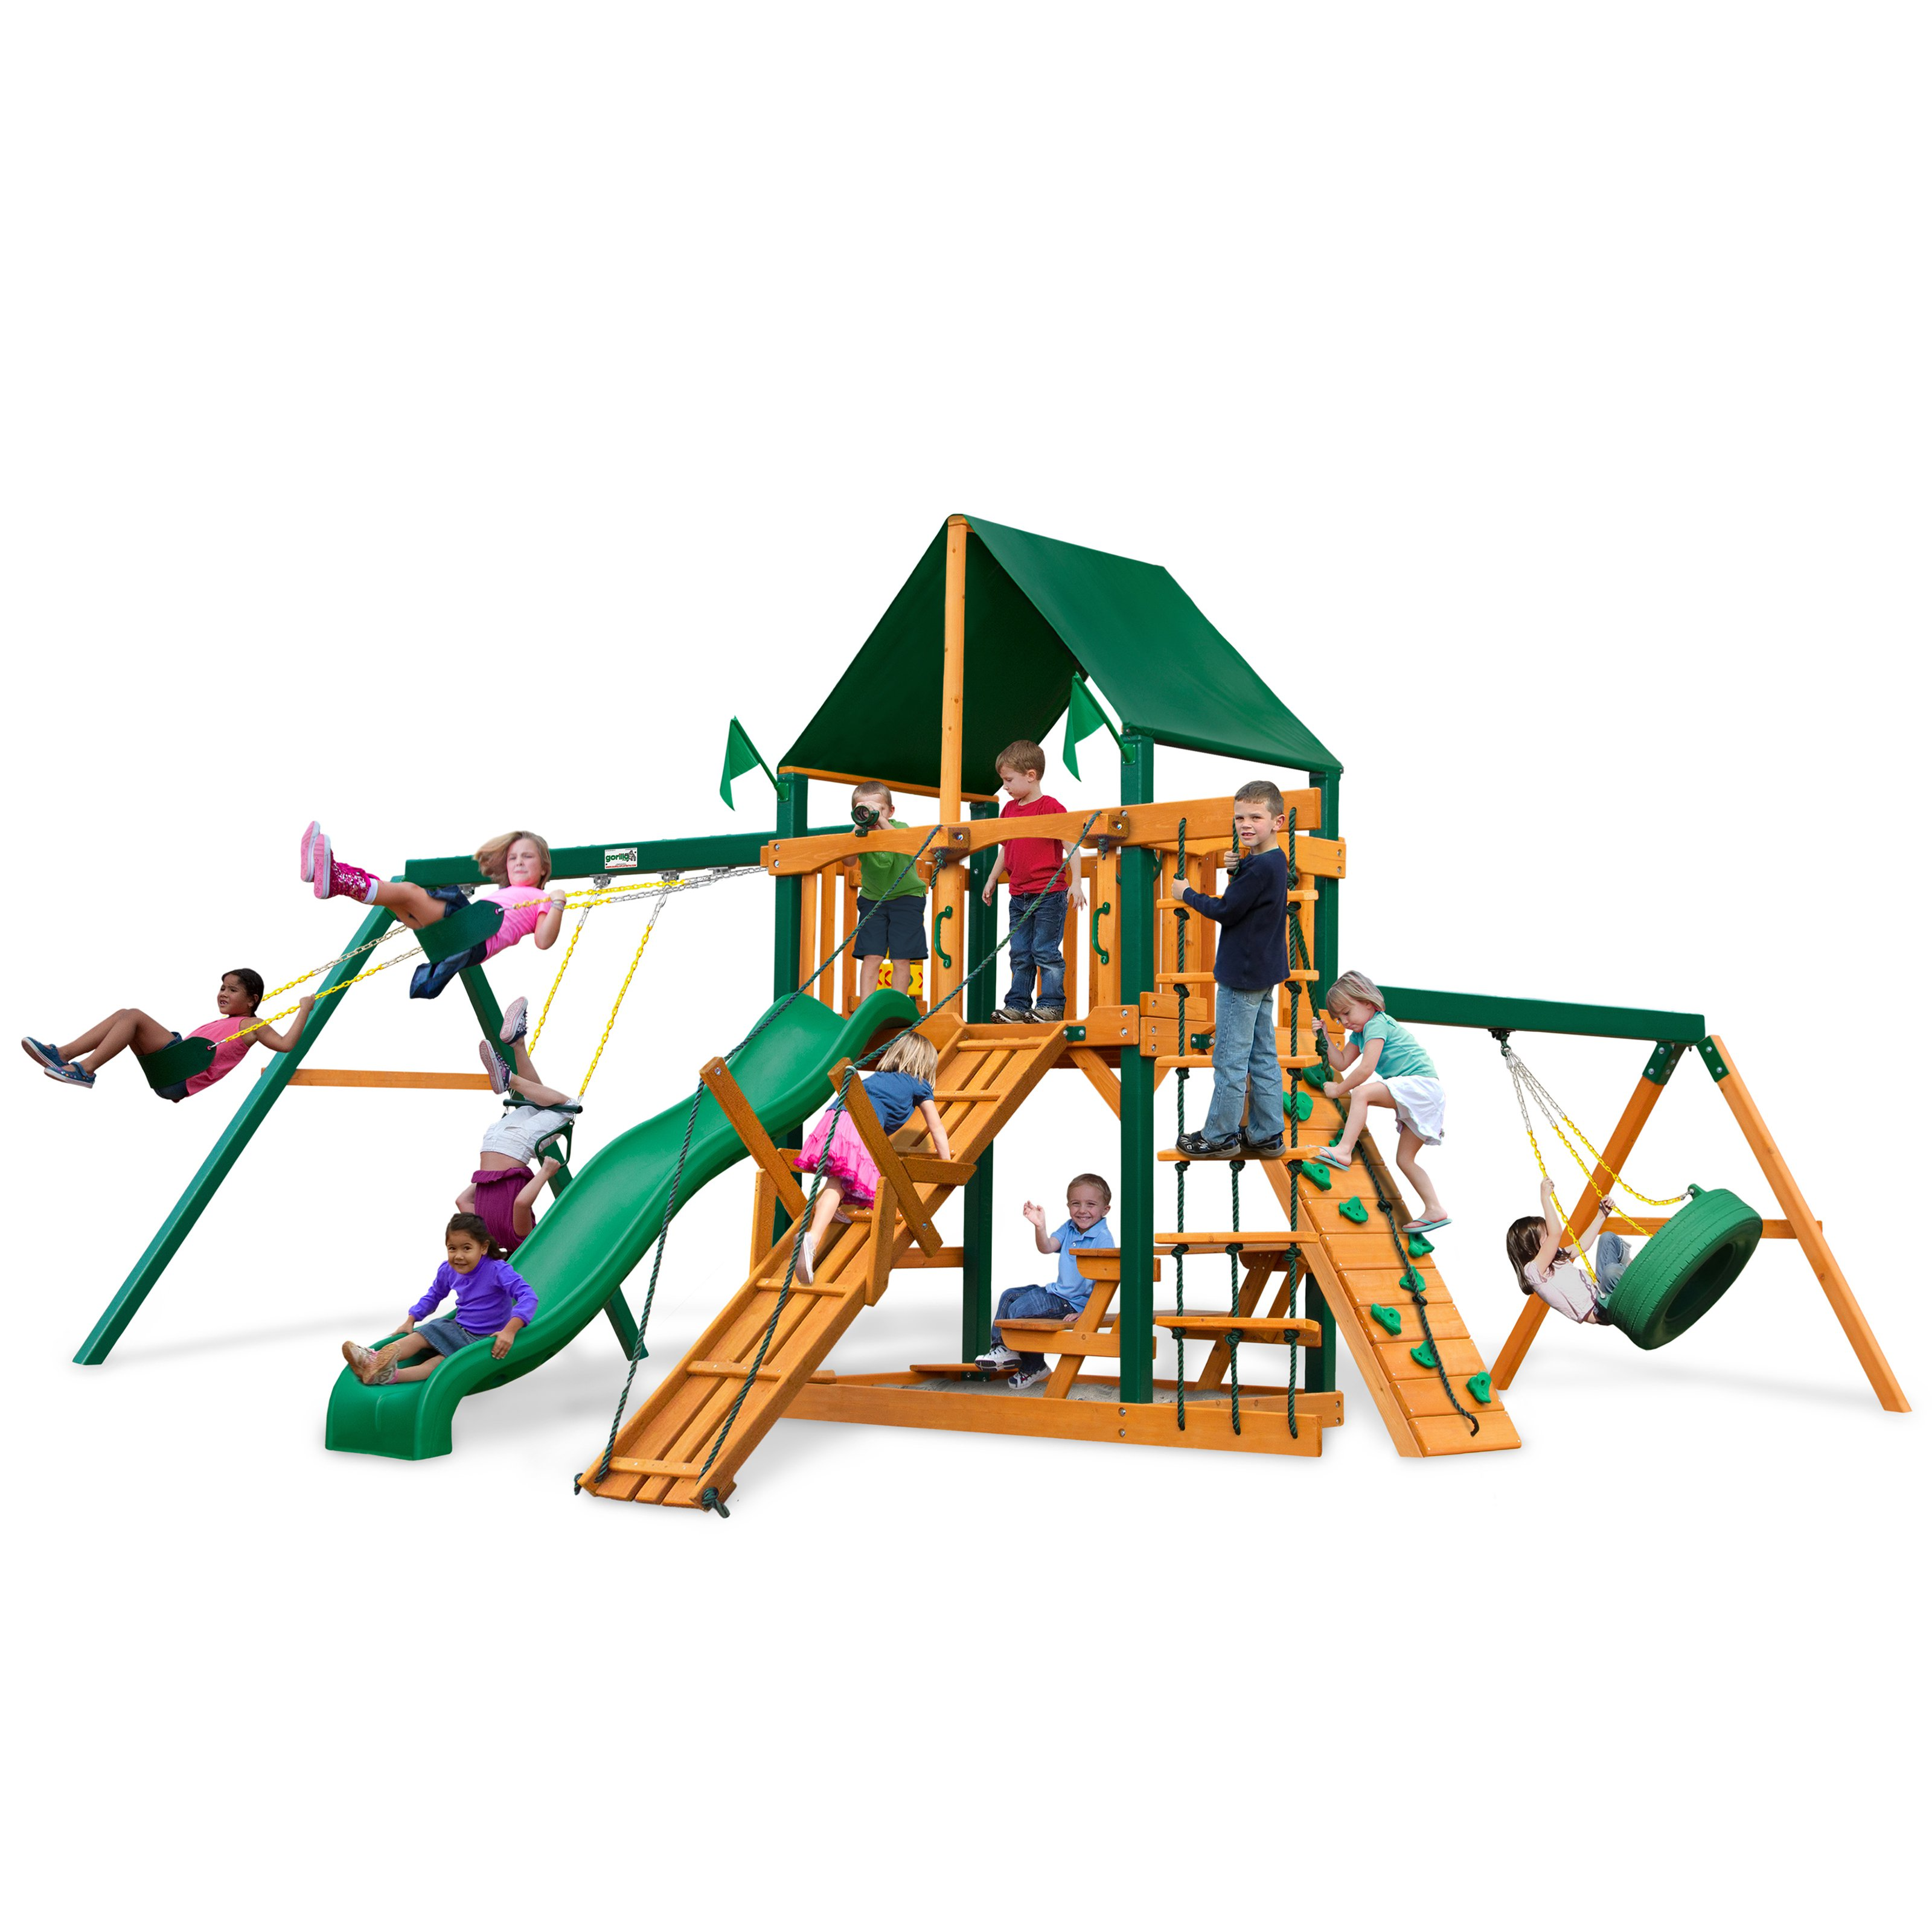 Gorilla Playsets Frontier Supreme Wood Swing Set with Canvas Green Canopy